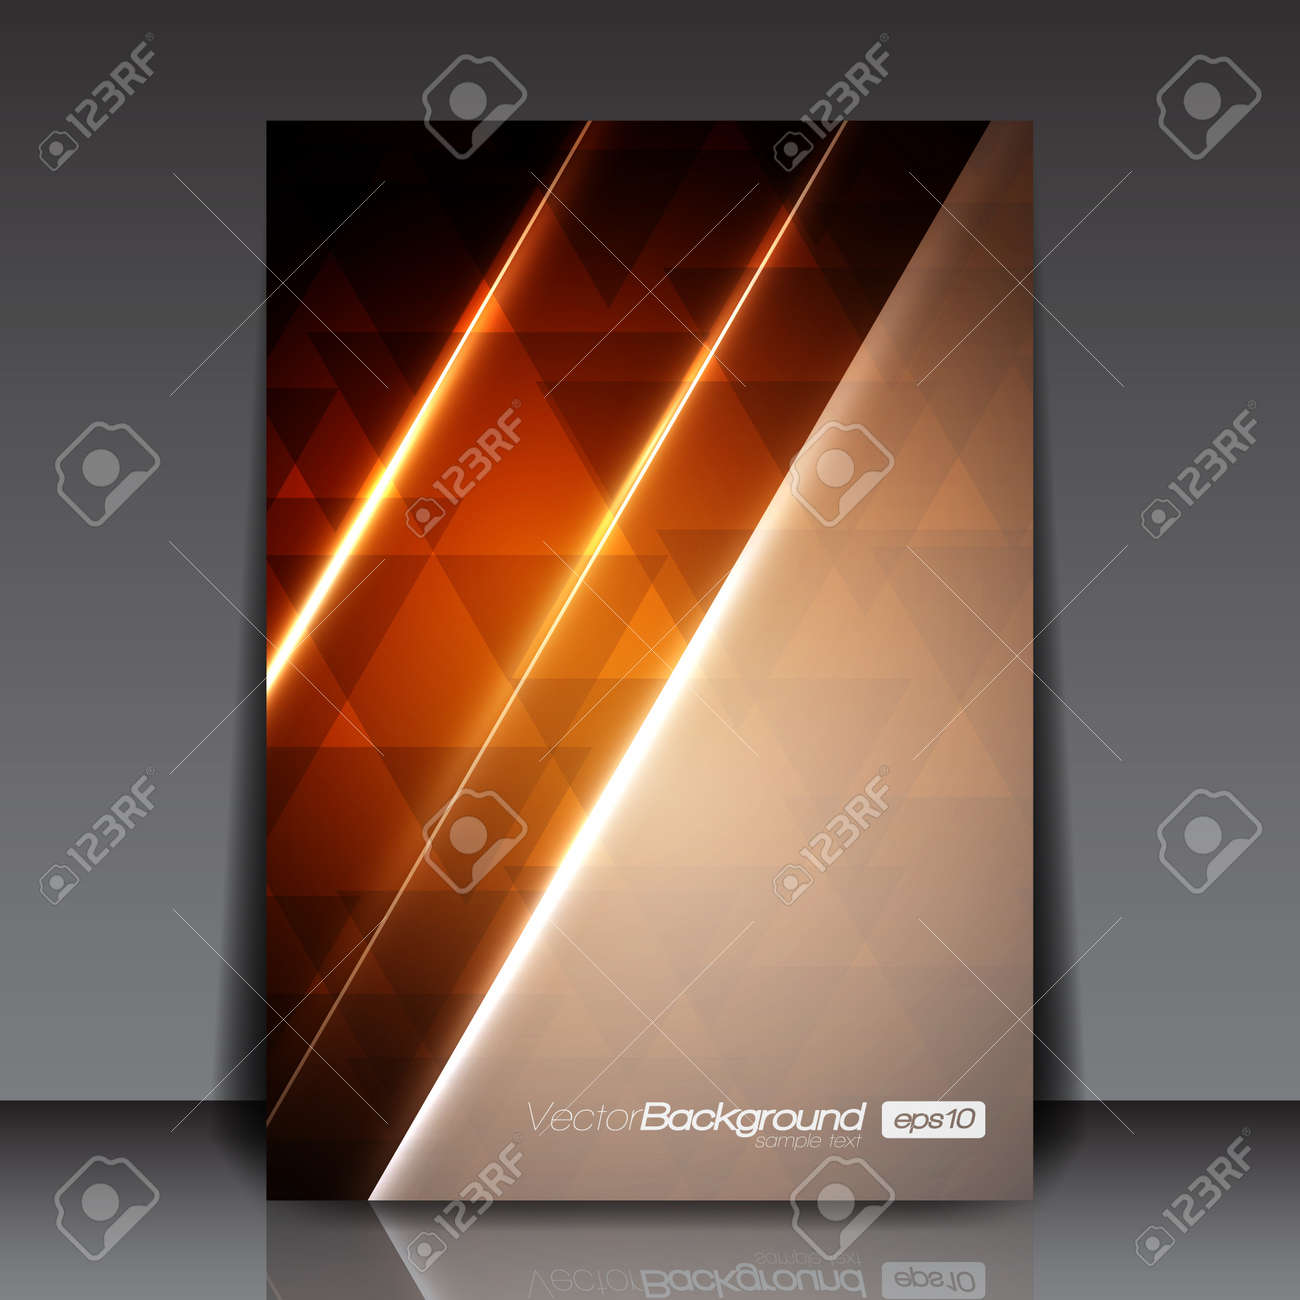 Abstract Modern Orange Flyer for You Stock Vector - 15775524